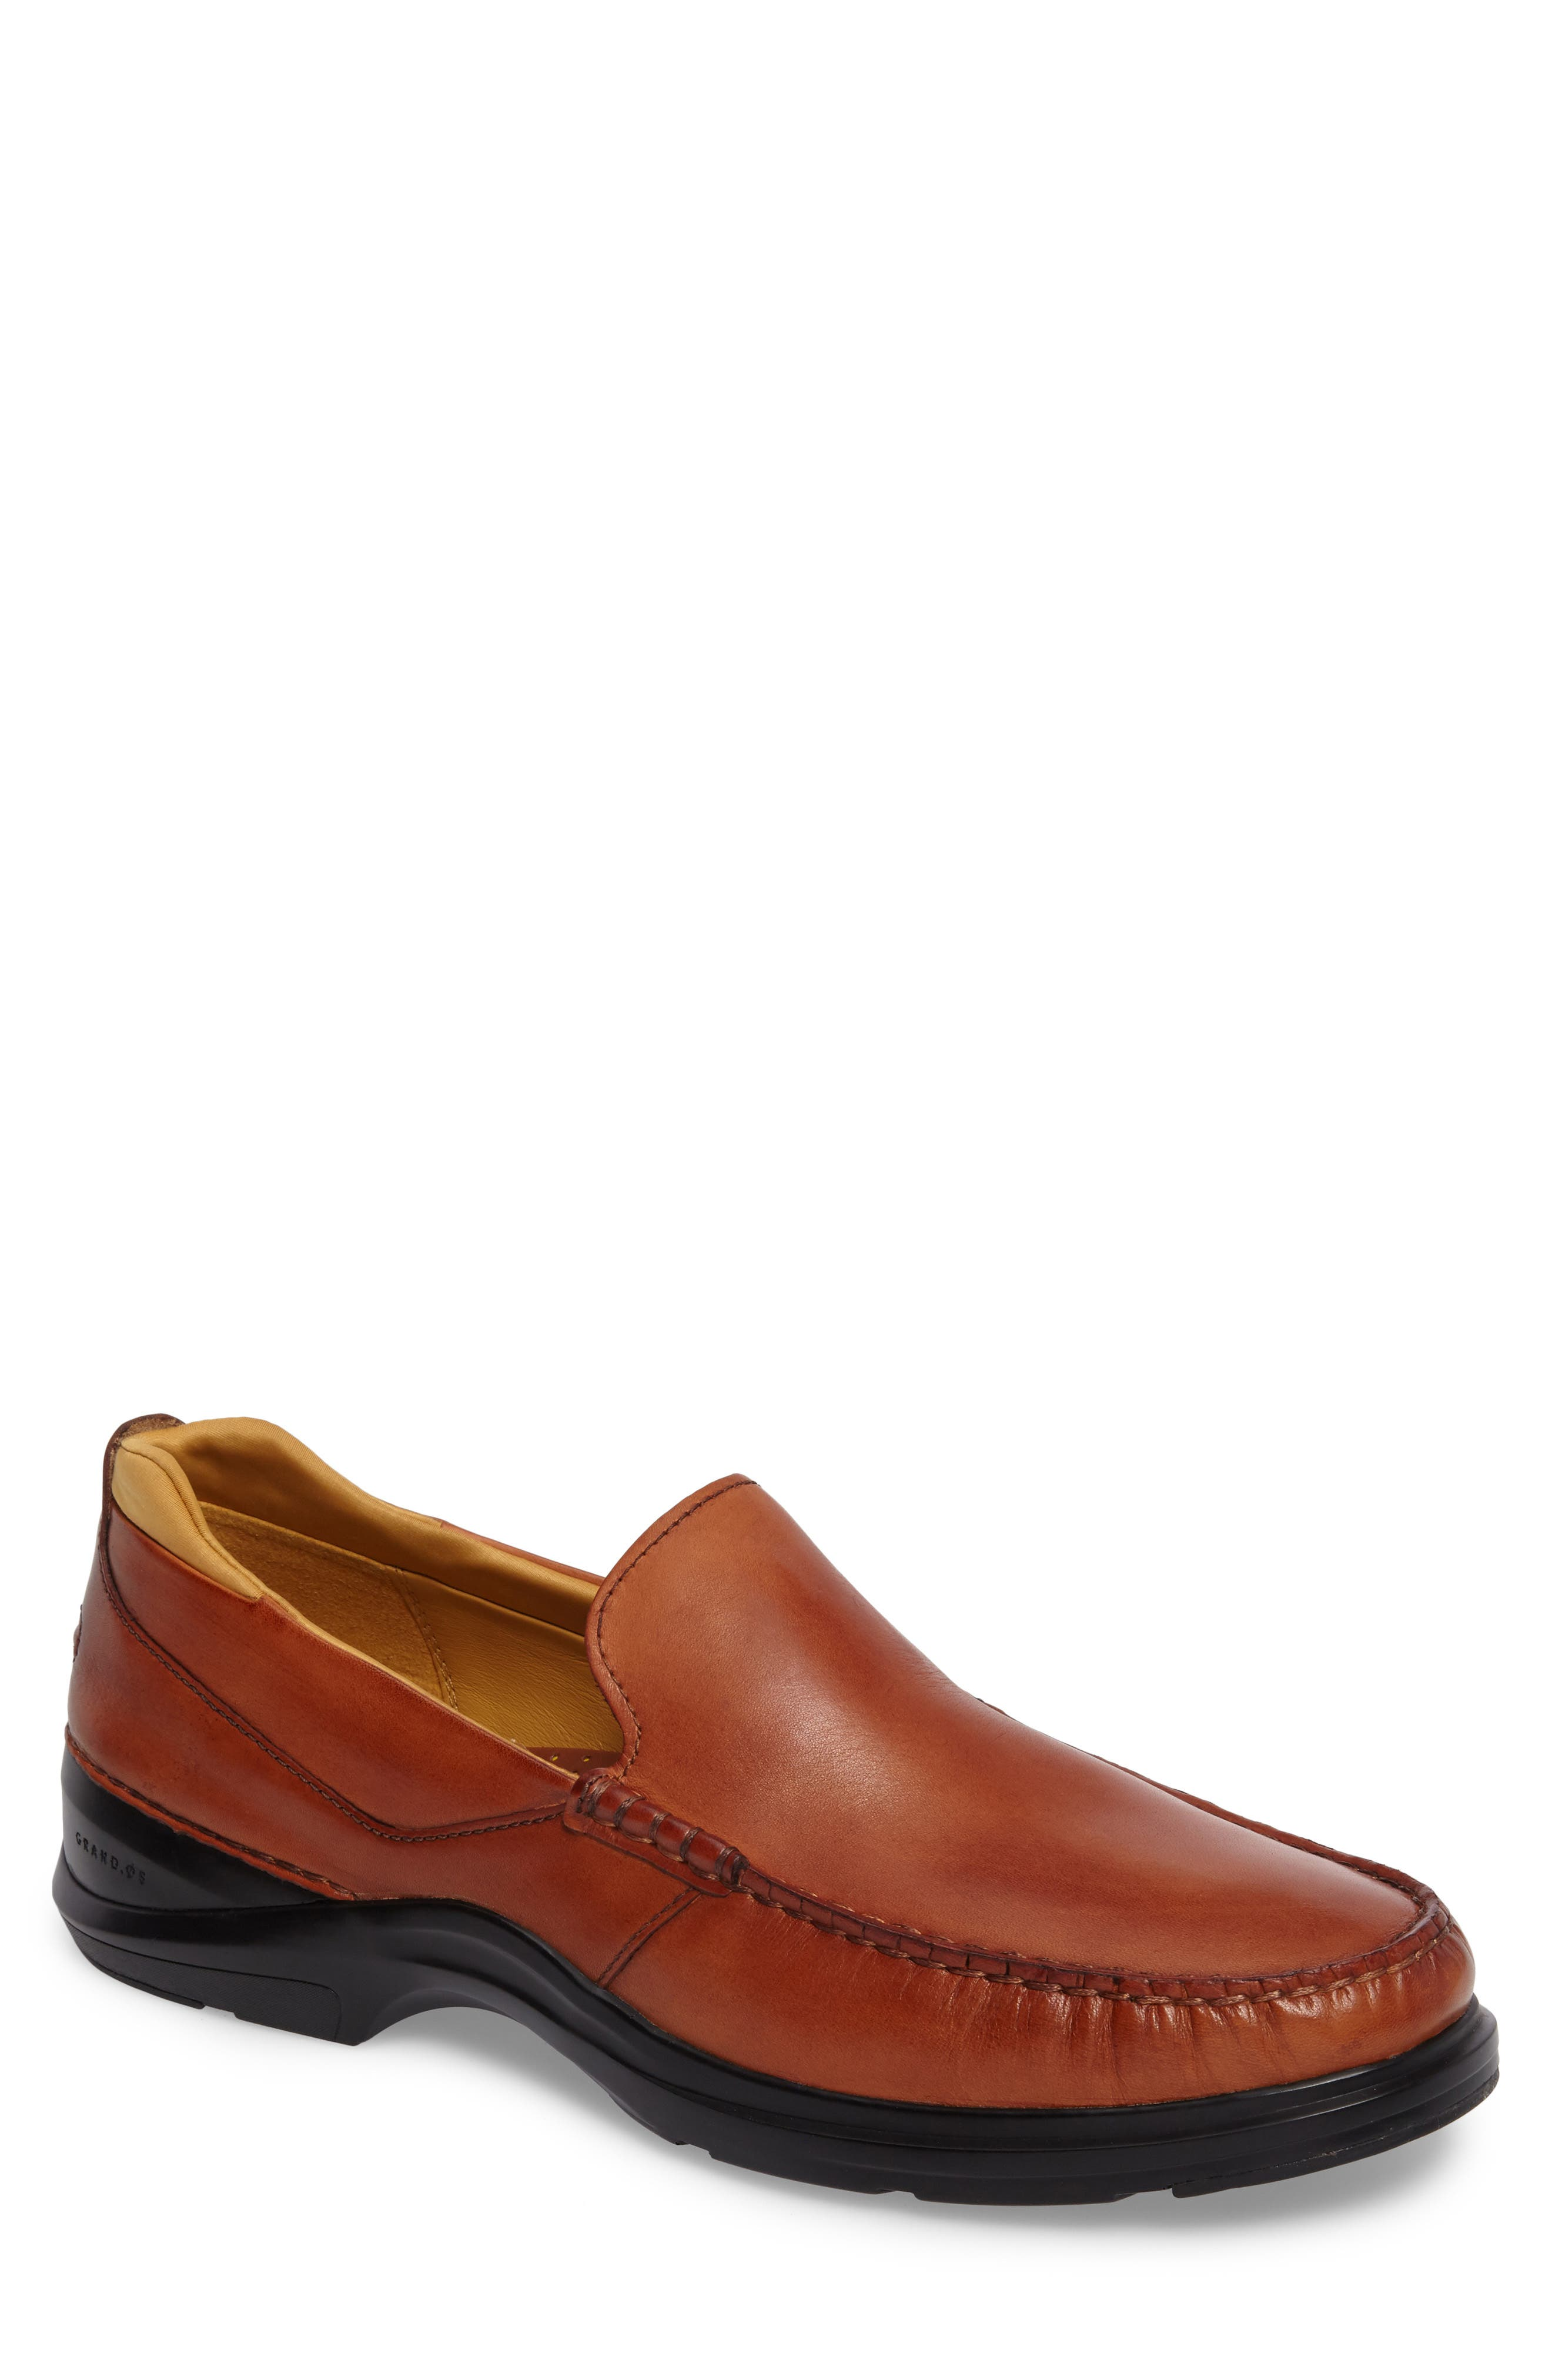 Alternate Image 1 Selected - Cole Haan Bancroft Loafer (Men)